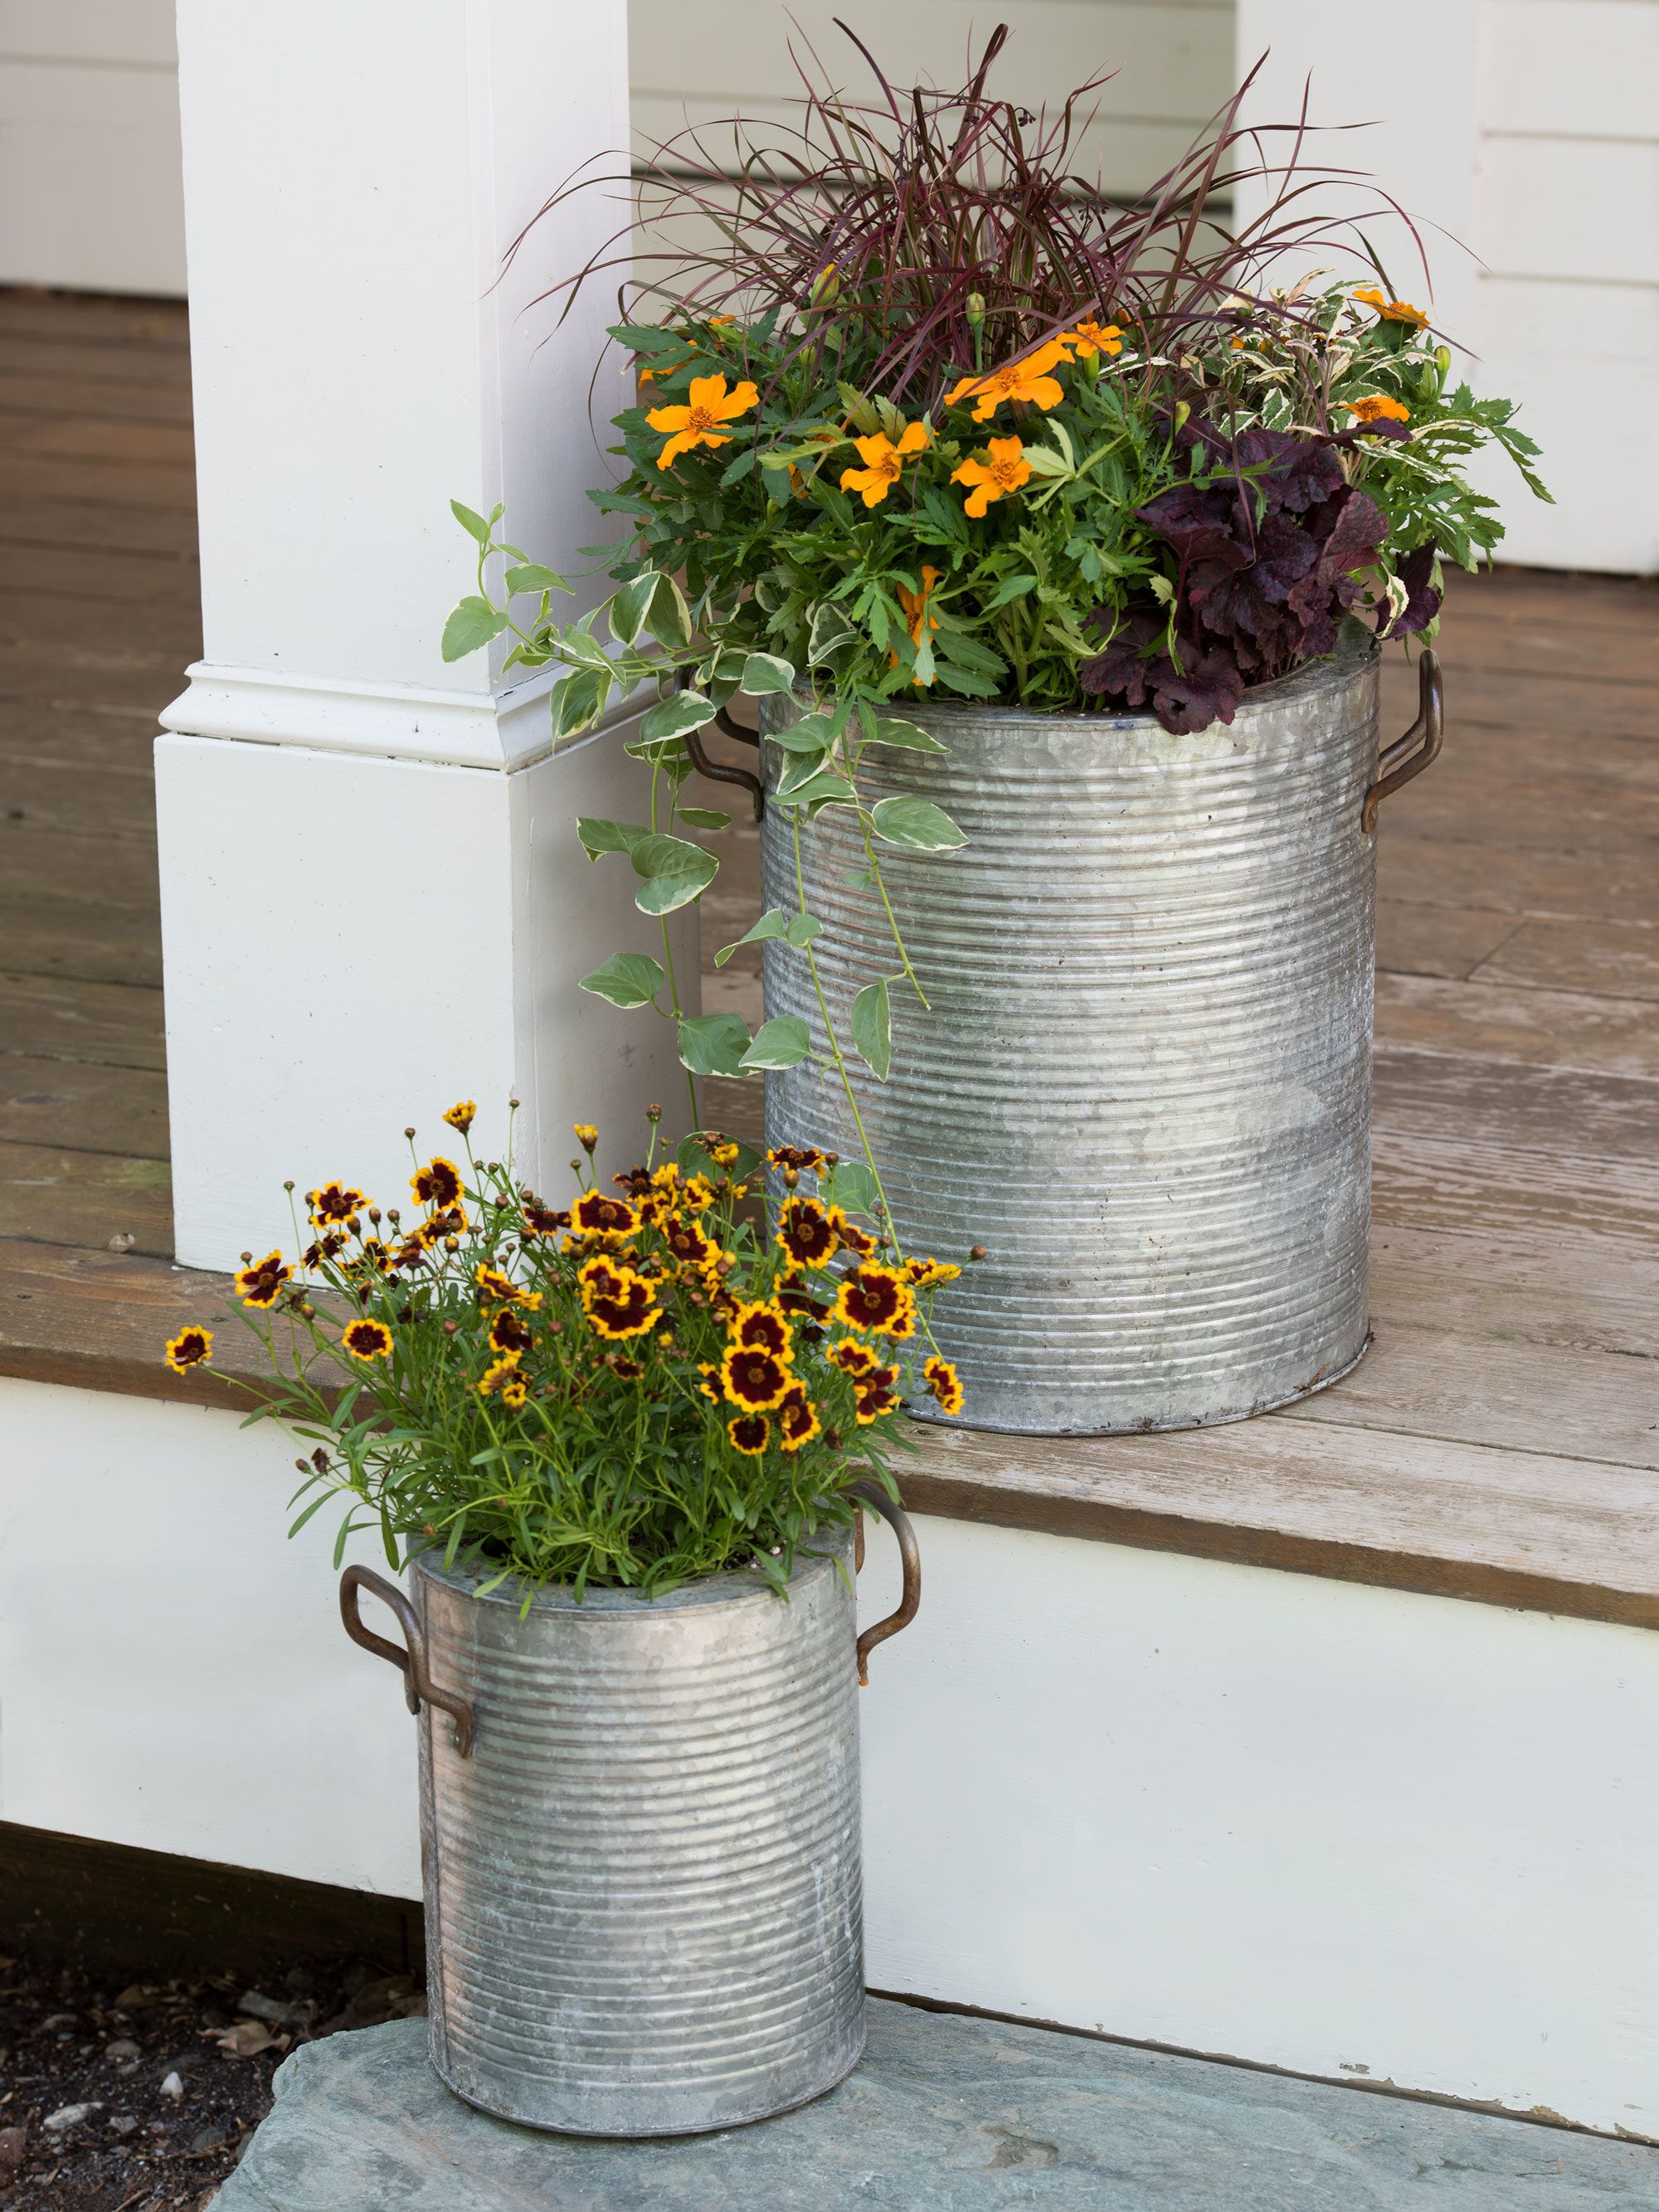 Galvanized Metal Planters With A Rim And Handles Gardeners Com Barrel Planter Metal Planters Planters